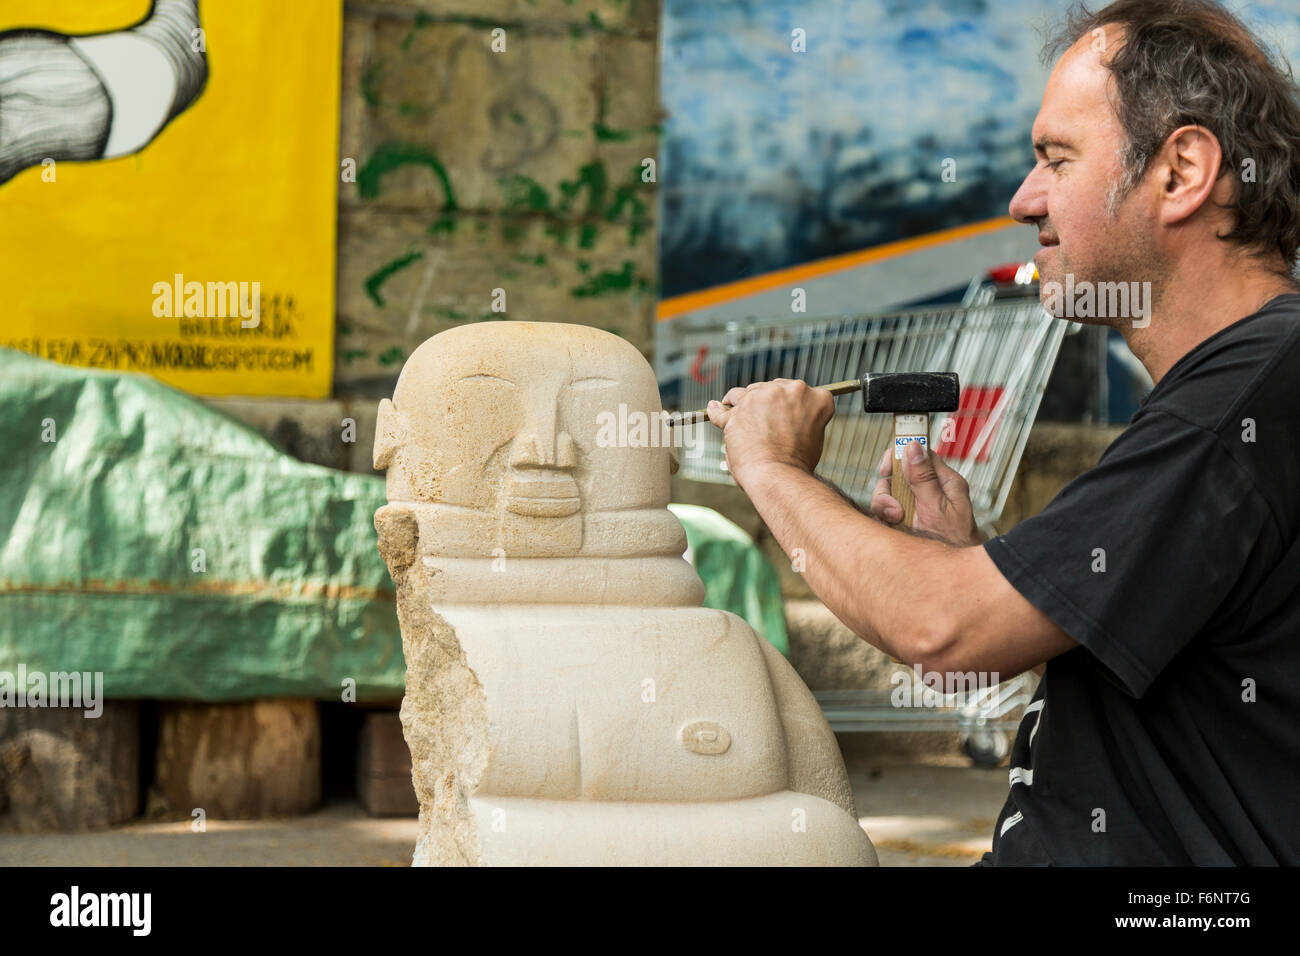 Sculptor Working on a Piece at Danube Canal Vienna - Stock Image